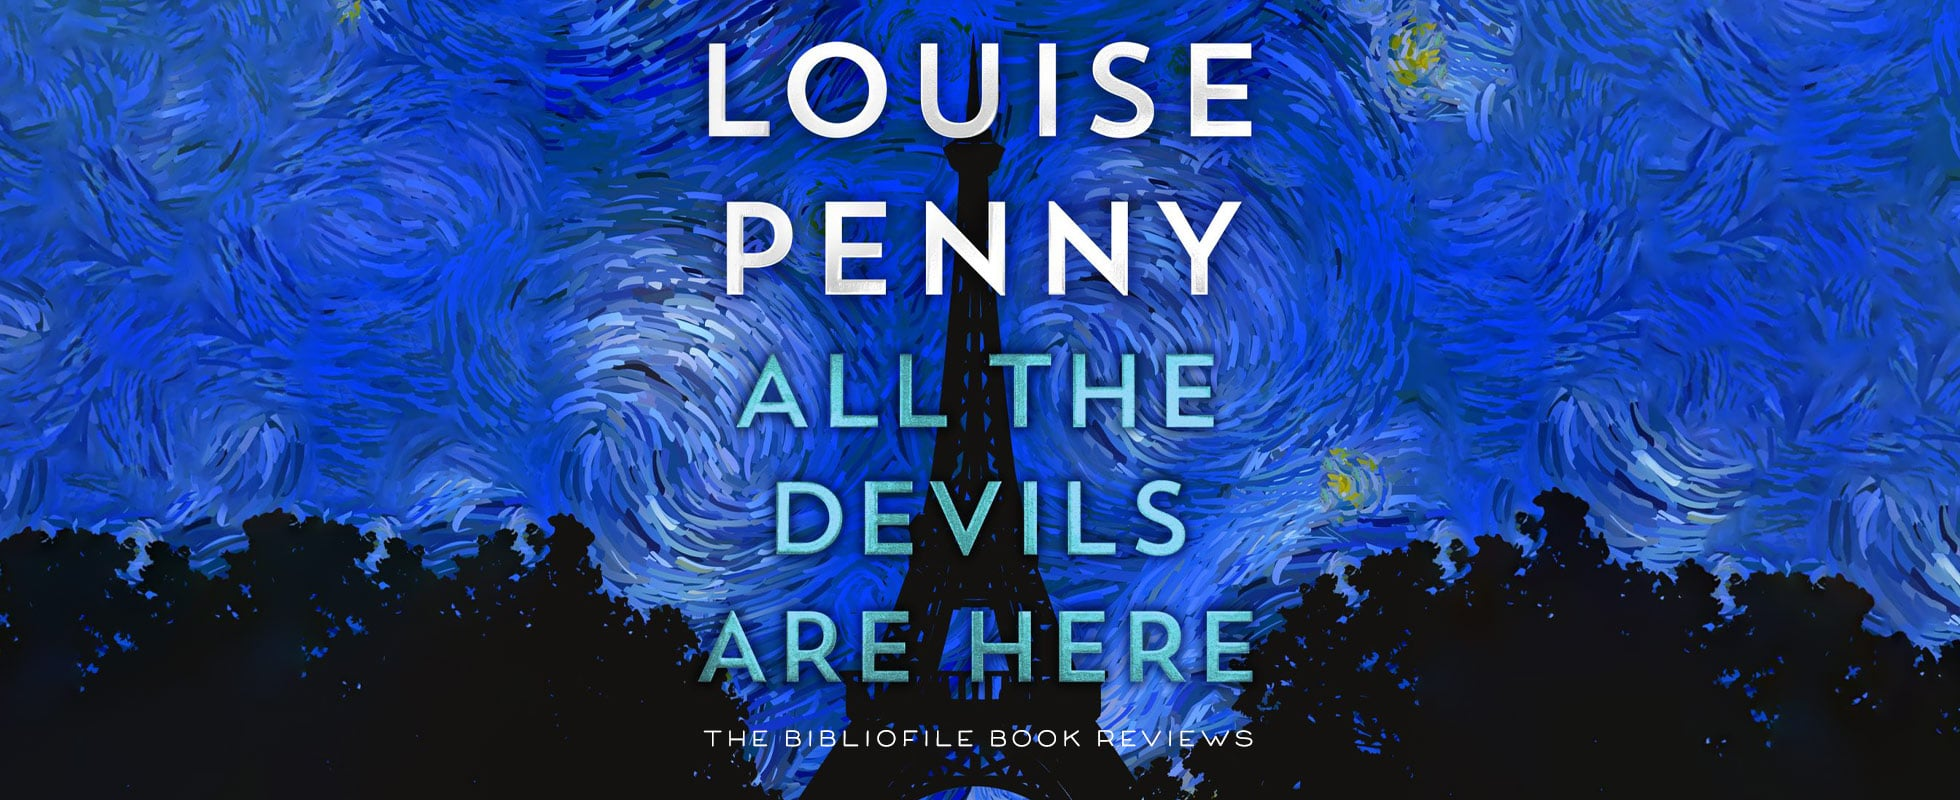 all the devils are here by louise penny spoilers summary ending book review plot synopsis book review detailed summary